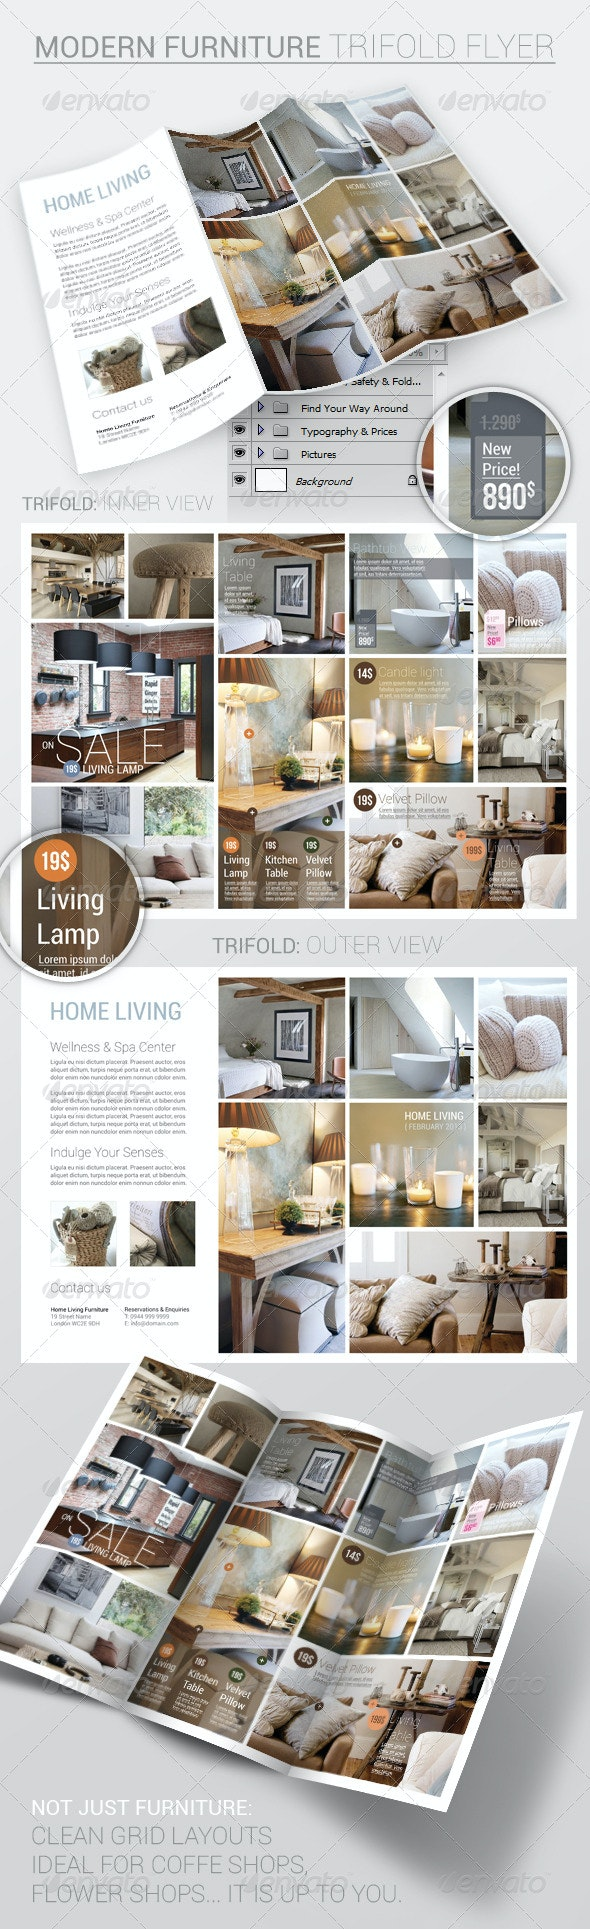 Furniture Trifold Flyer Template - Catalogs Brochures